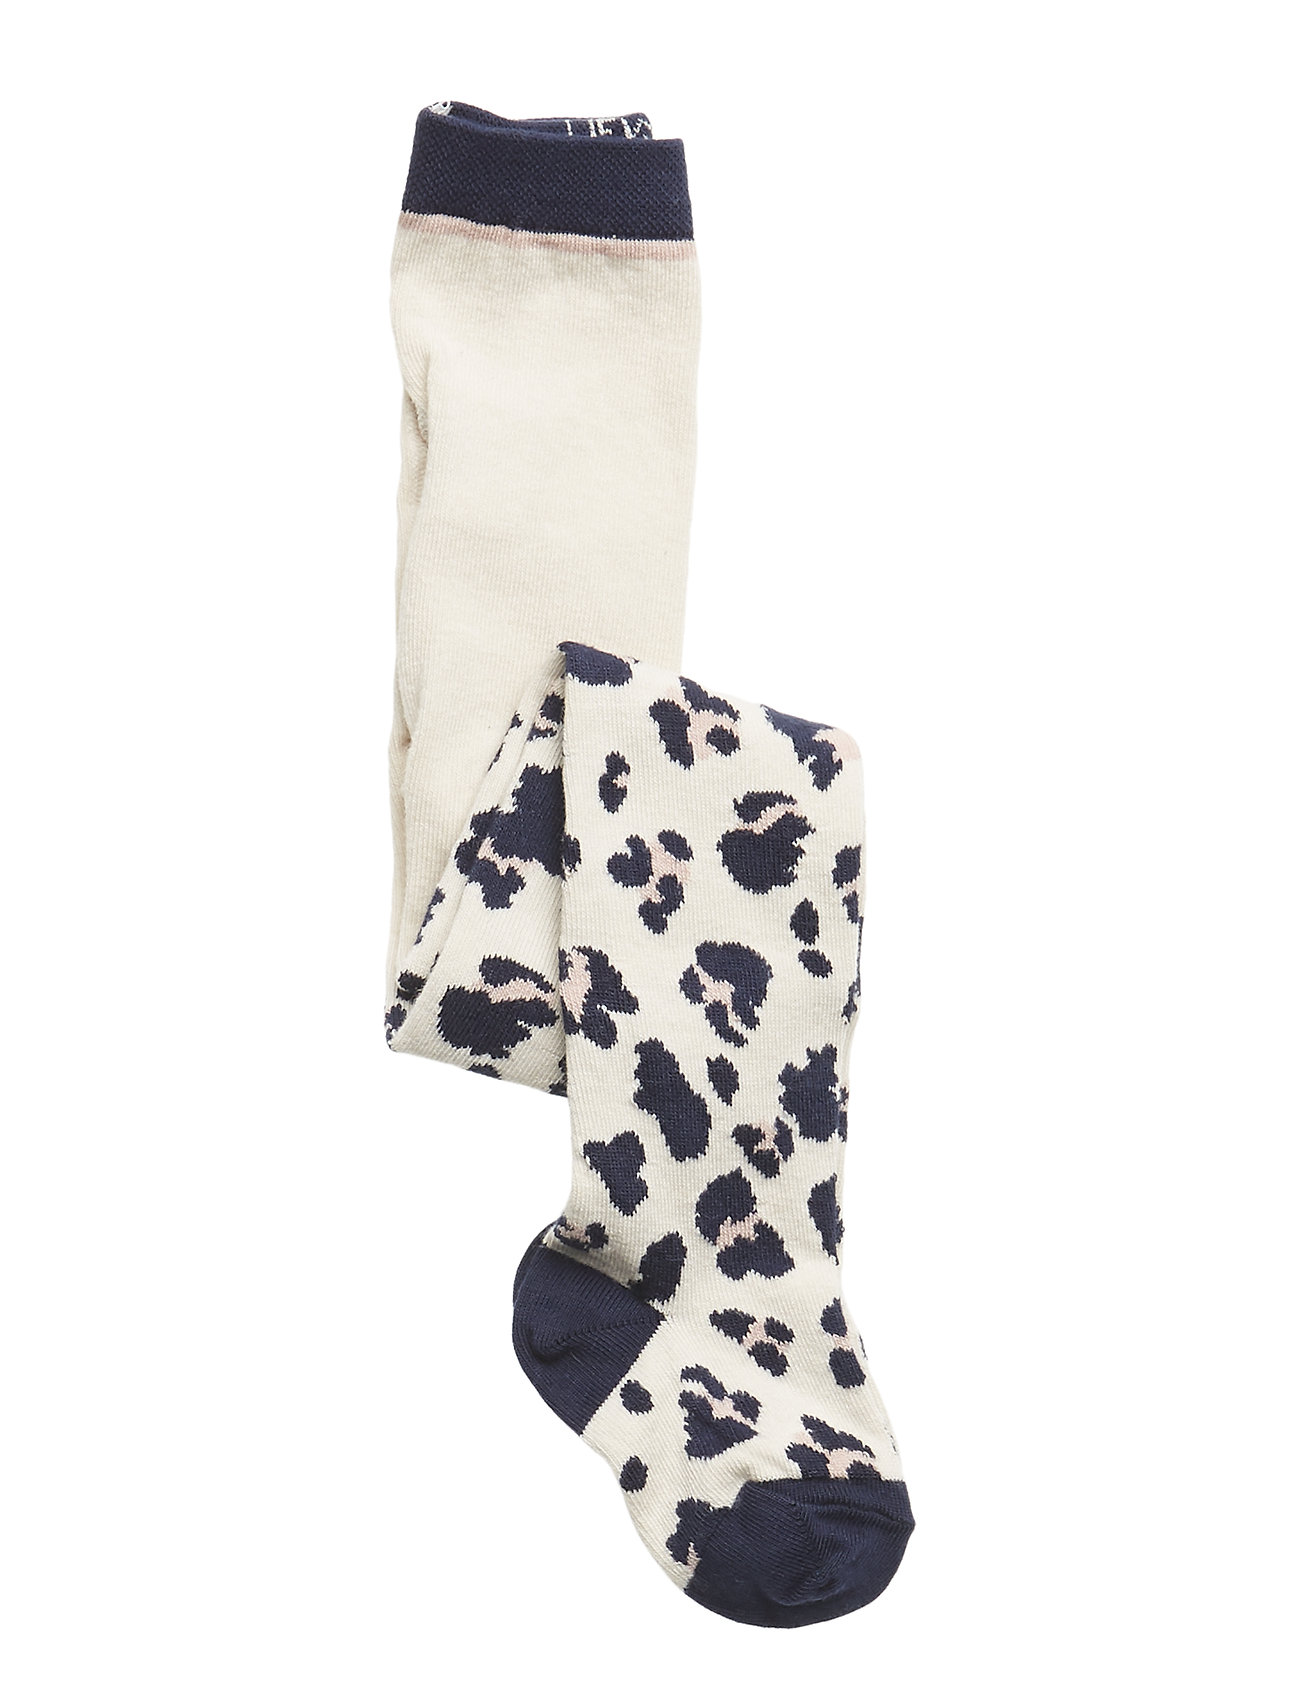 Liewood Silje cotton stocking - LEO BEIGE BEAUTY